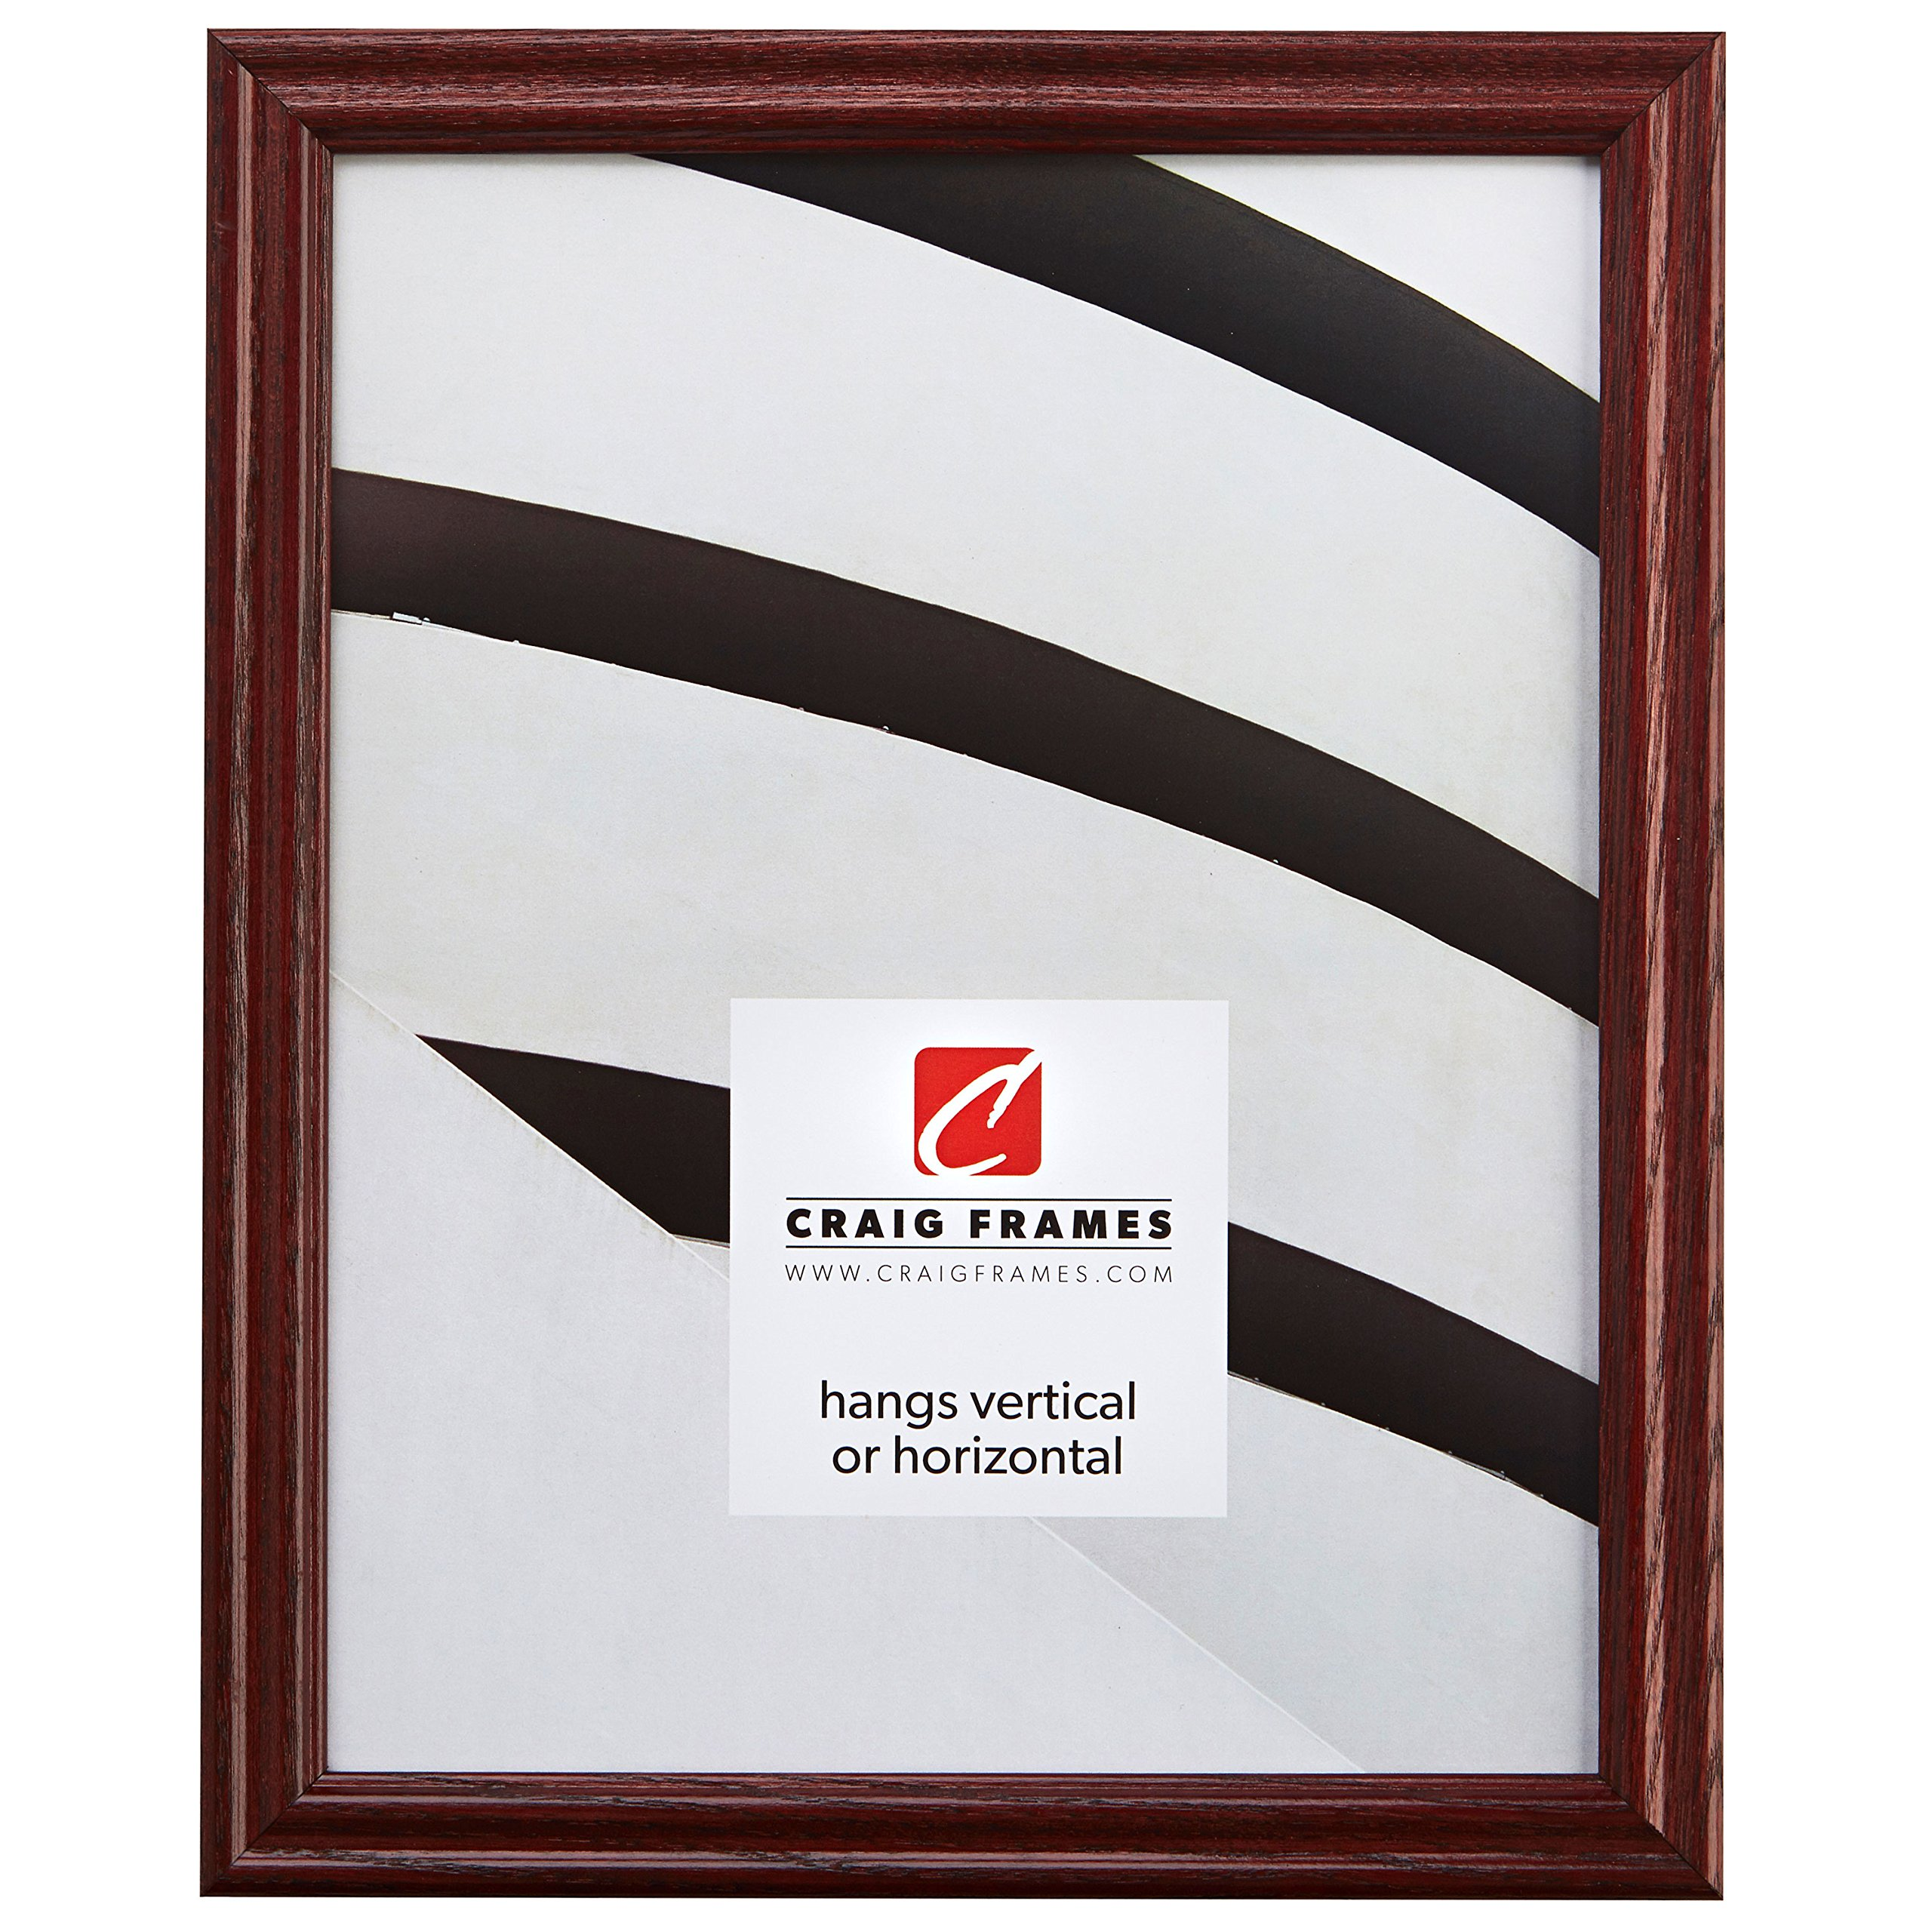 16x21 Picture/Poster Frame, Wood Grain Finish.75'' Wide, Cherry Red (200ASHCH)